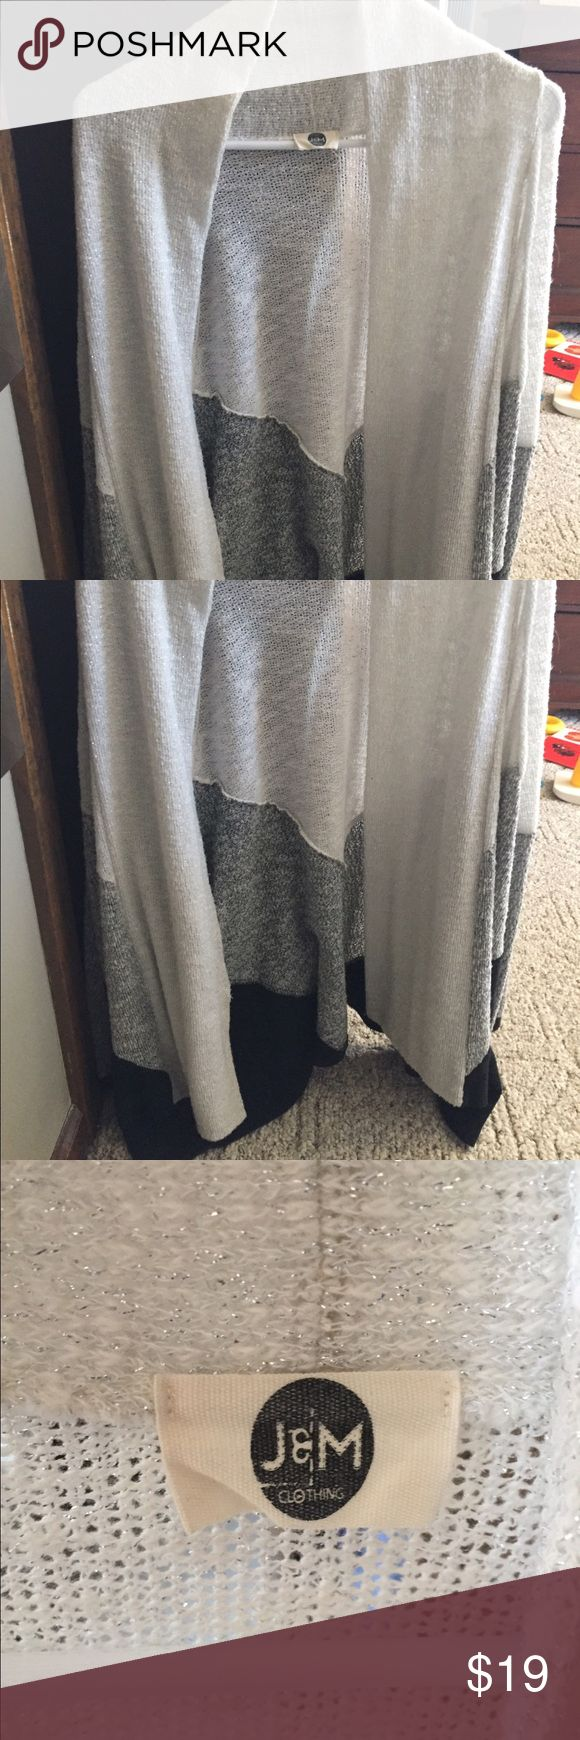 Black, white and grey knit open front cardigan Black, white and grey knit open front cardigan. Has chevron design and shimmer throughout. Size M. Originally purchased from Piace Sweaters Cardigans